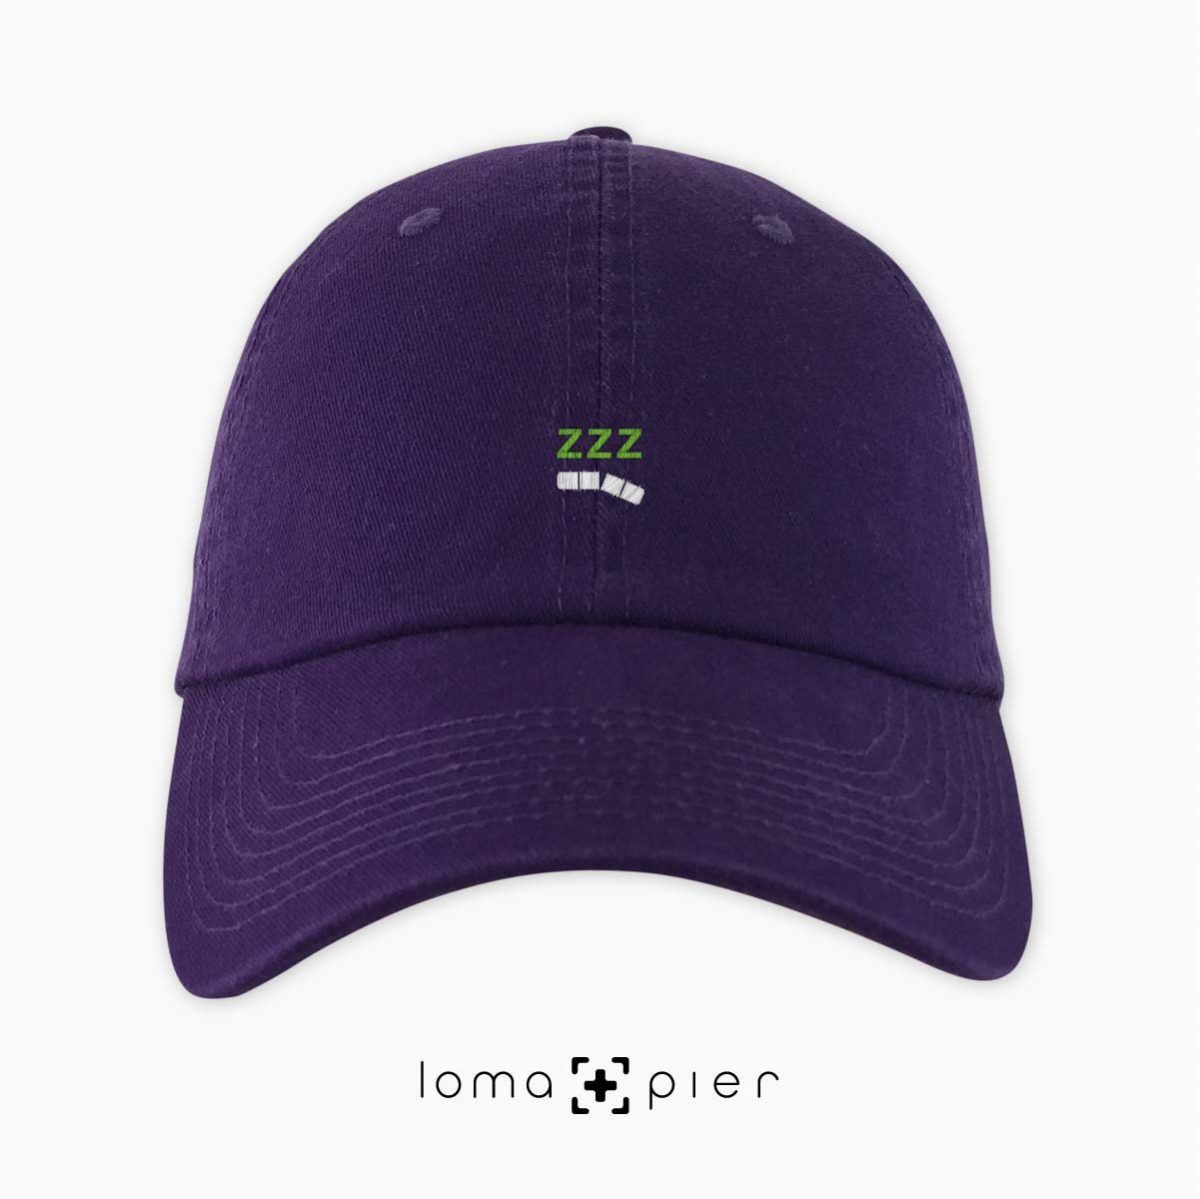 ZZZ-ANNY icon embroidered on a purple unstructured dad hat with white and lime green thread by loma+pier hat store made in the USA